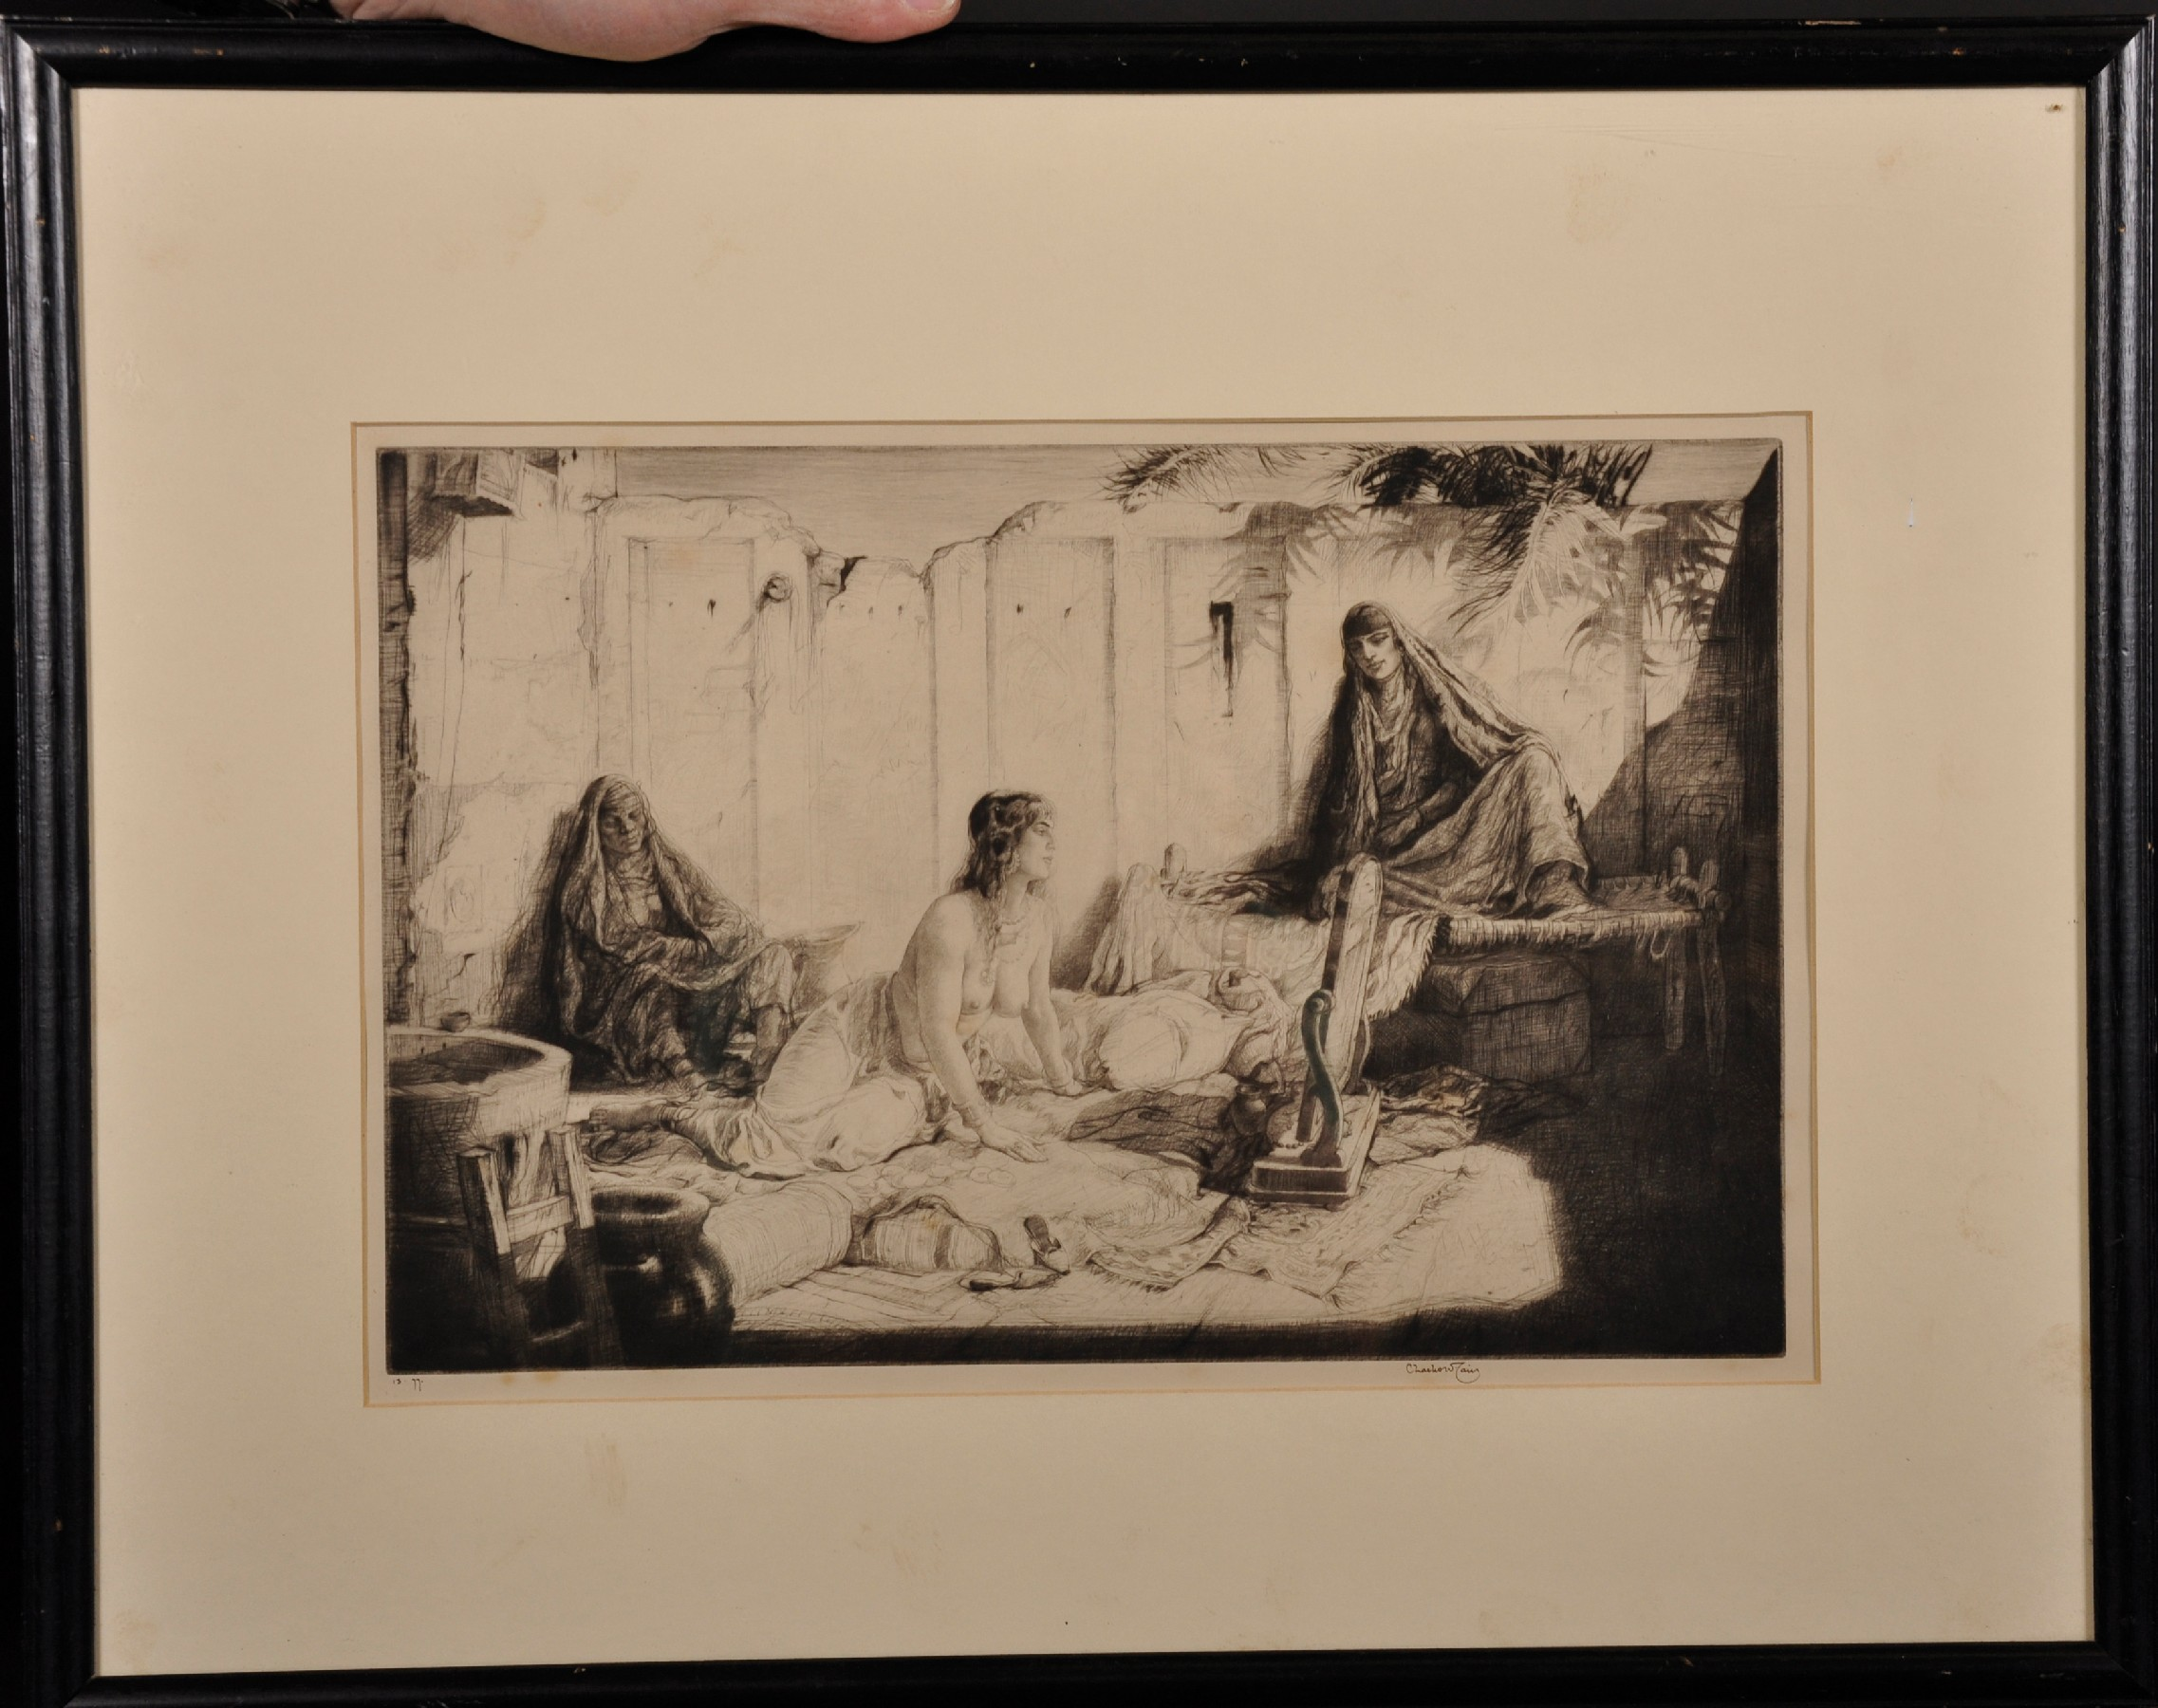 Charles William Cain (1893-1962) British. A Hareem Scene, Etching, Signed and Inscribed '13.77.', - Image 2 of 5